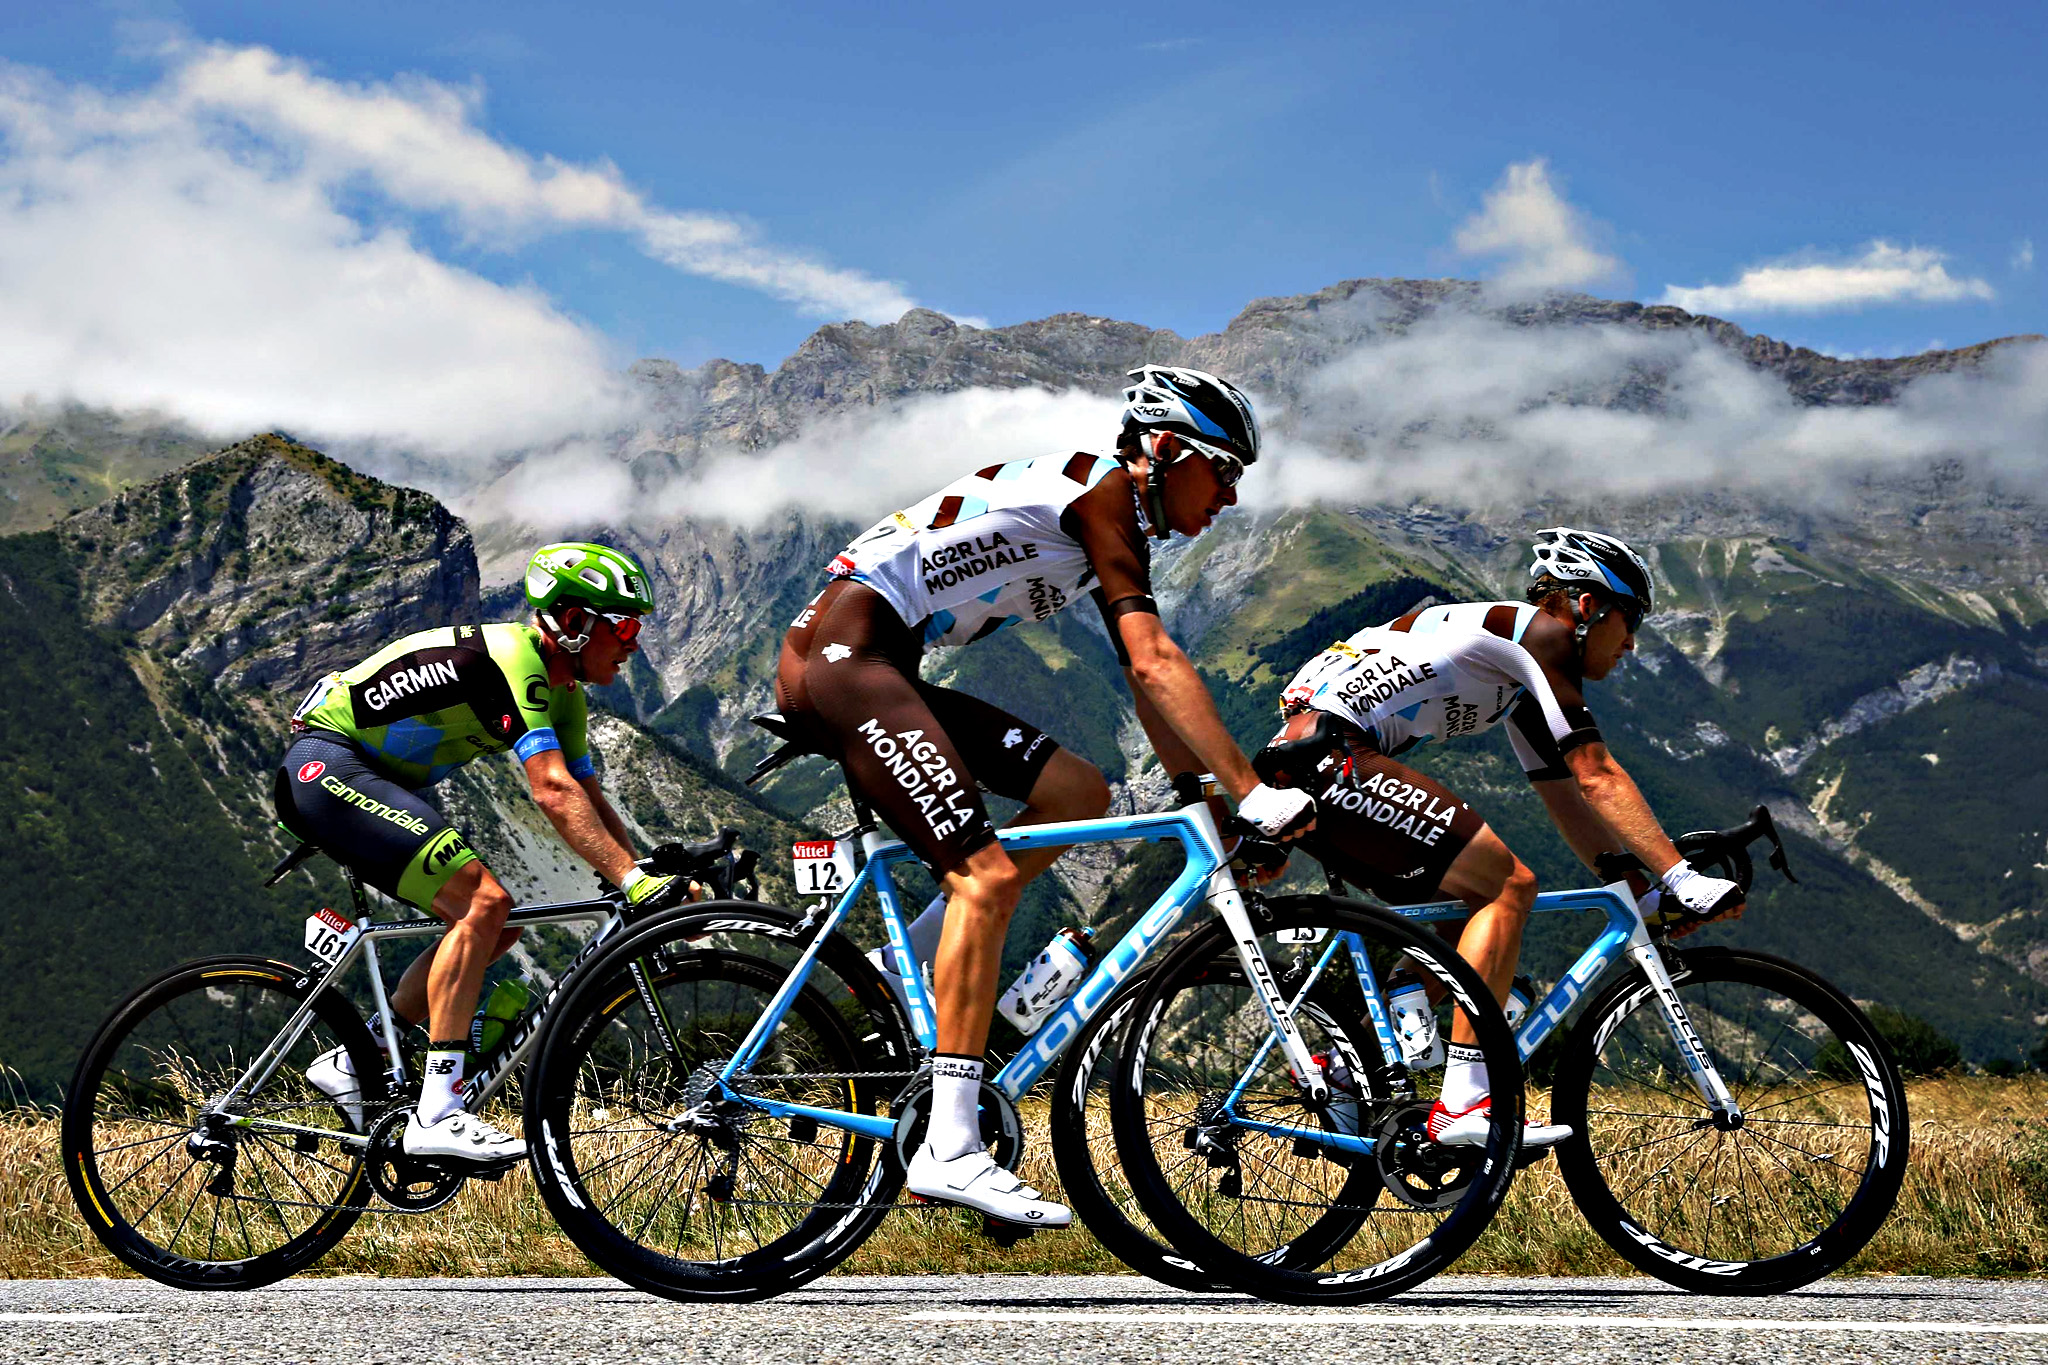 Cannondale-Garmin rider Talansky of the US, AG2R La Mondiale riders Bardet of France and Bakelants of Belgium cycle during the 18th stage of the 102nd Tour de France cycling race...Cannondale-Garmin rider Andrew Talansky of the U.S. (L), AG2R La Mondiale riders Romain Bardet of France (C) and Jan Bakelants of Belgium cycle during the 186.5-km (115.88 miles) 18th stage of the 102nd Tour de France cycling race from Gap to Saint-Jean-de-Maurienne in the French Alps mountains, France, July 23, 2015.